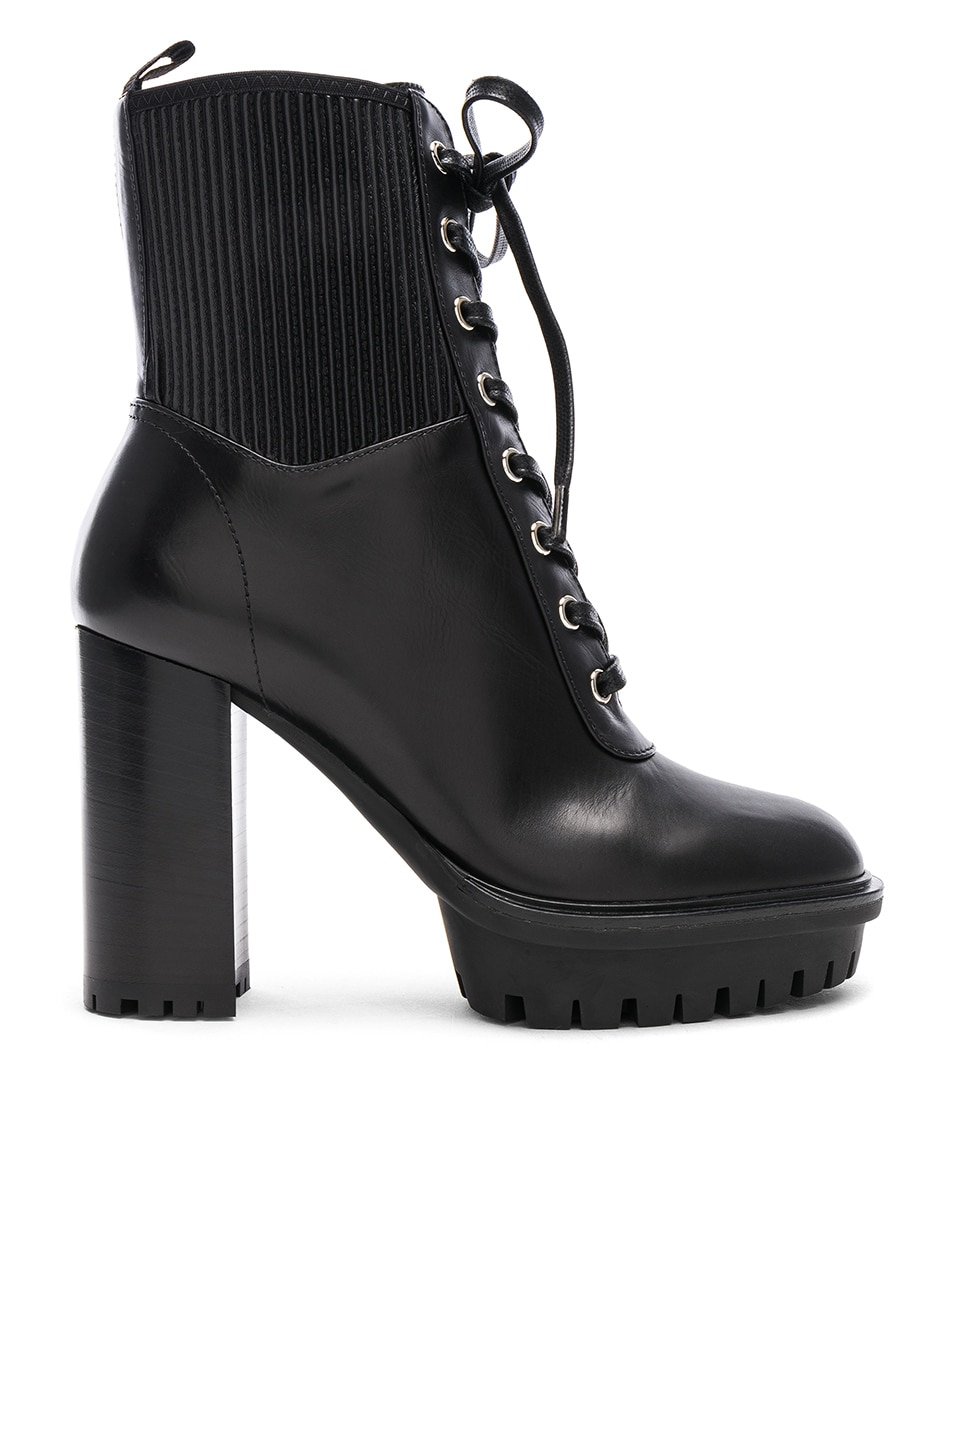 Image 1 of Gianvito Rossi Leather & Eco Stretch Martis Platform Ankle Boots in Black